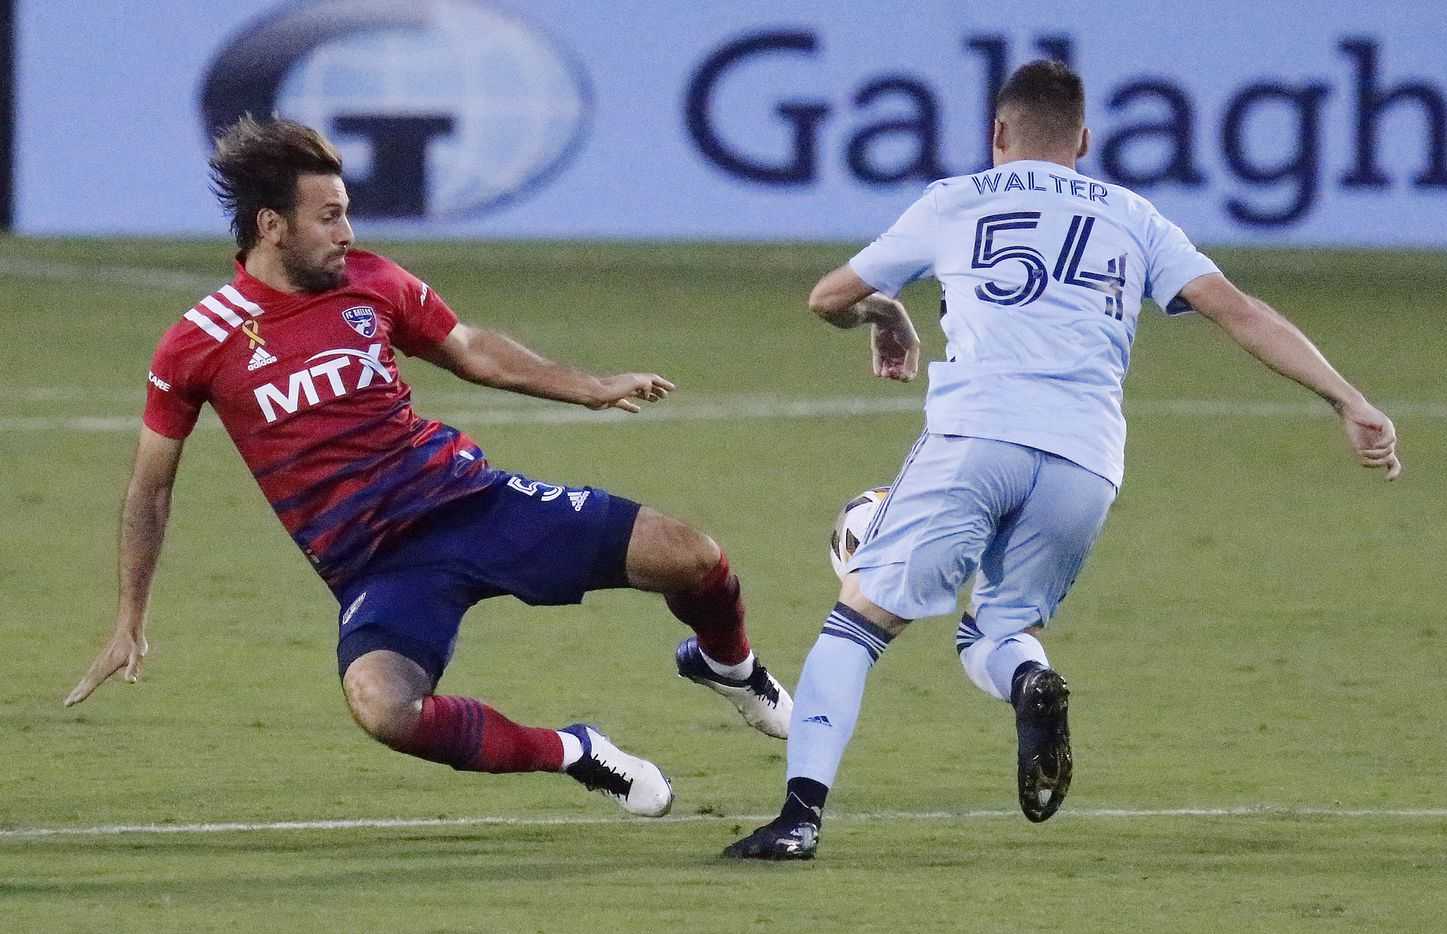 FC Dallas midfielder Facundo Quignon (5) tries to make a play on the ball before Sporting Kansas City midfielder Remi Walter (54) during the first half as FC Dallas hosted Sporting Kansas City at Toyota Stadium in Frisco on Wednesday, September 29, 2021. (Stewart F. House/Special Contributor)